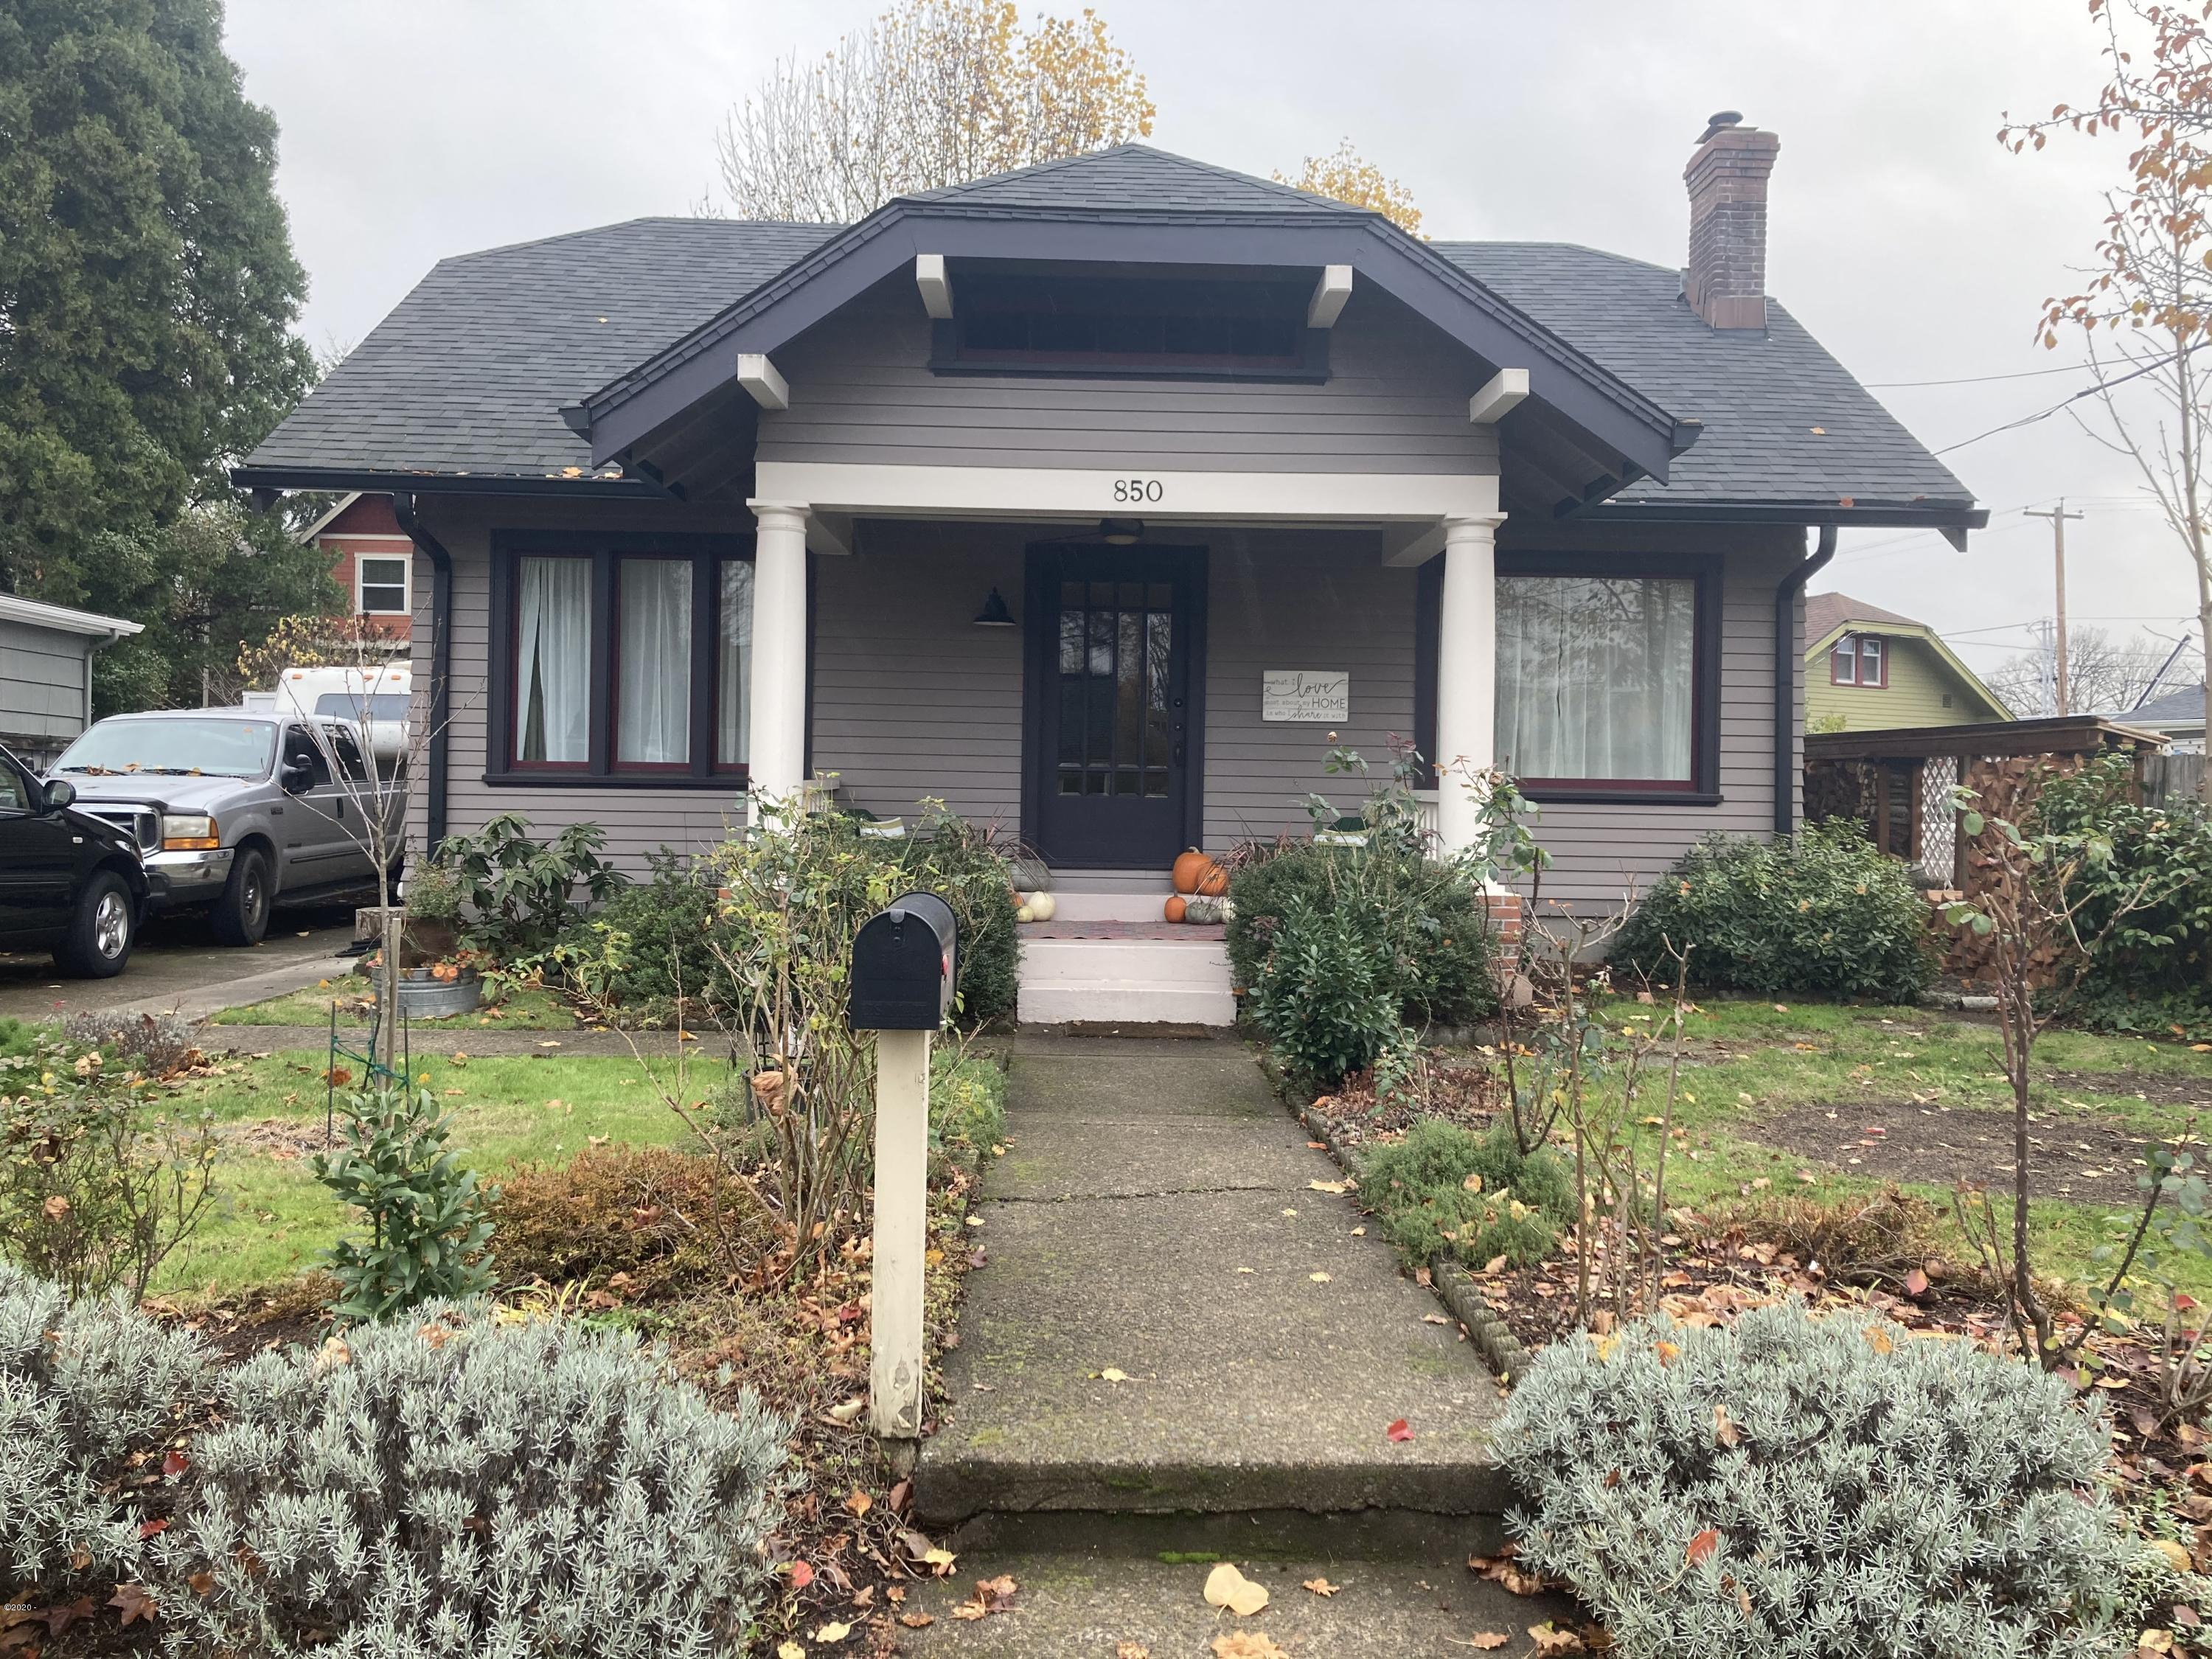 850 SW C Ave, Corvallis, OR 97333 - Front